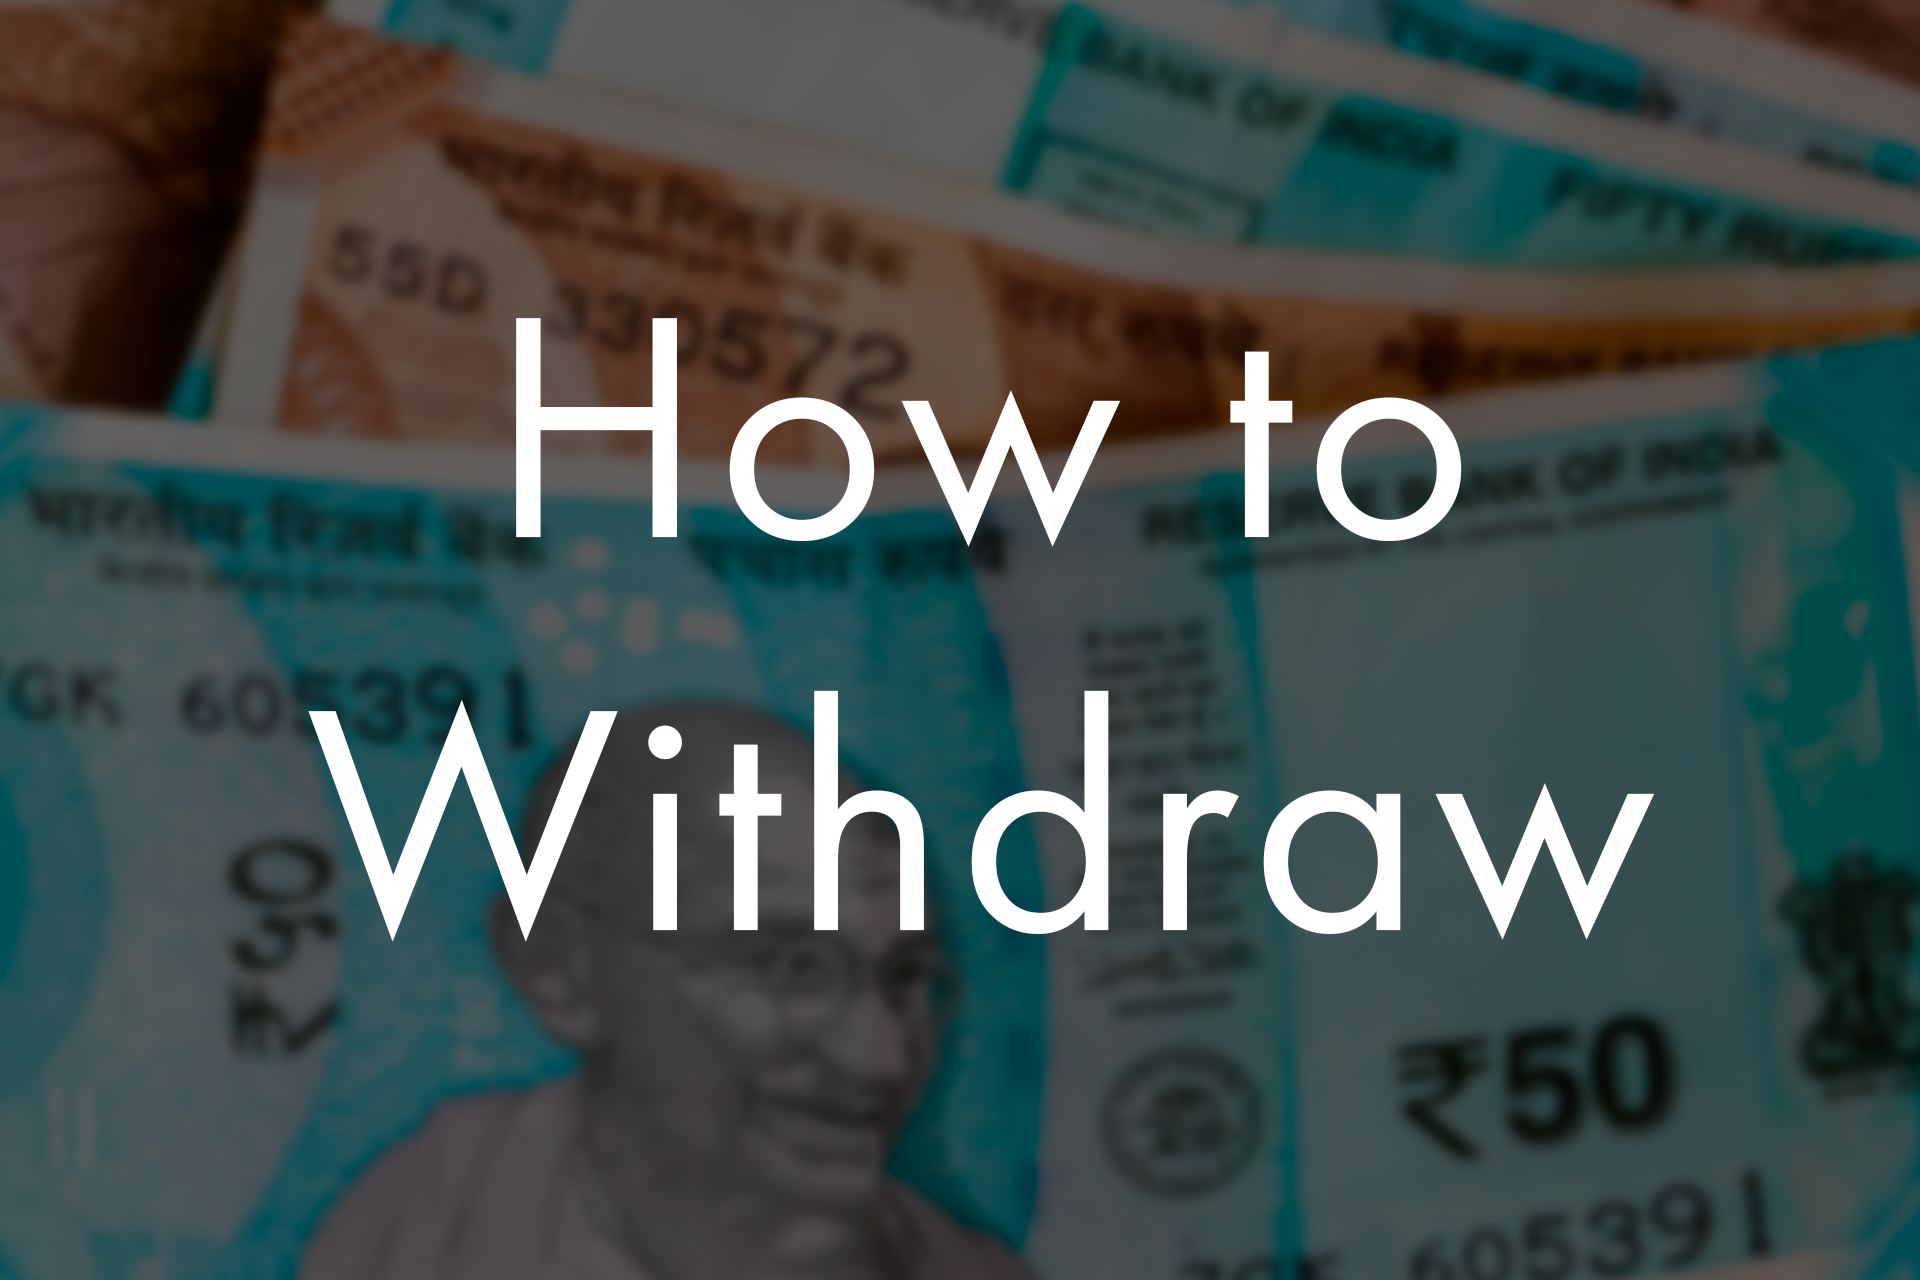 After you win you can withdraw money to your bank card or e-wallet.